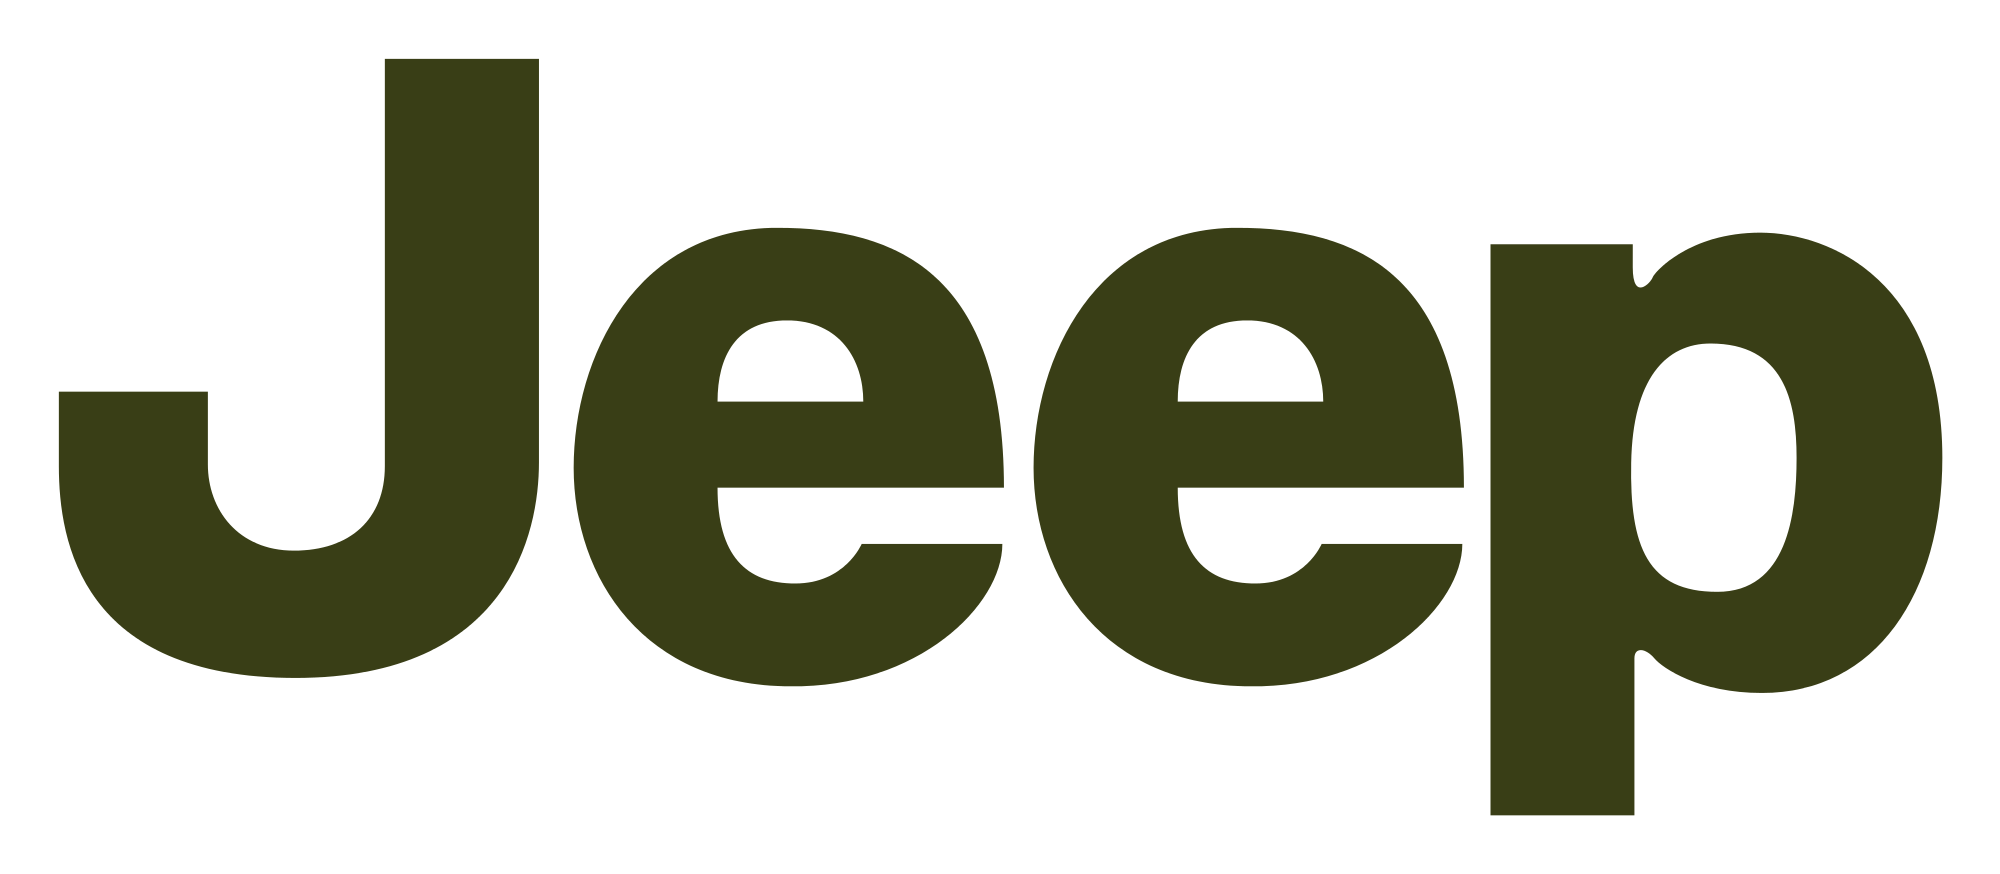 Jeep text png. File svg wikimedia commons